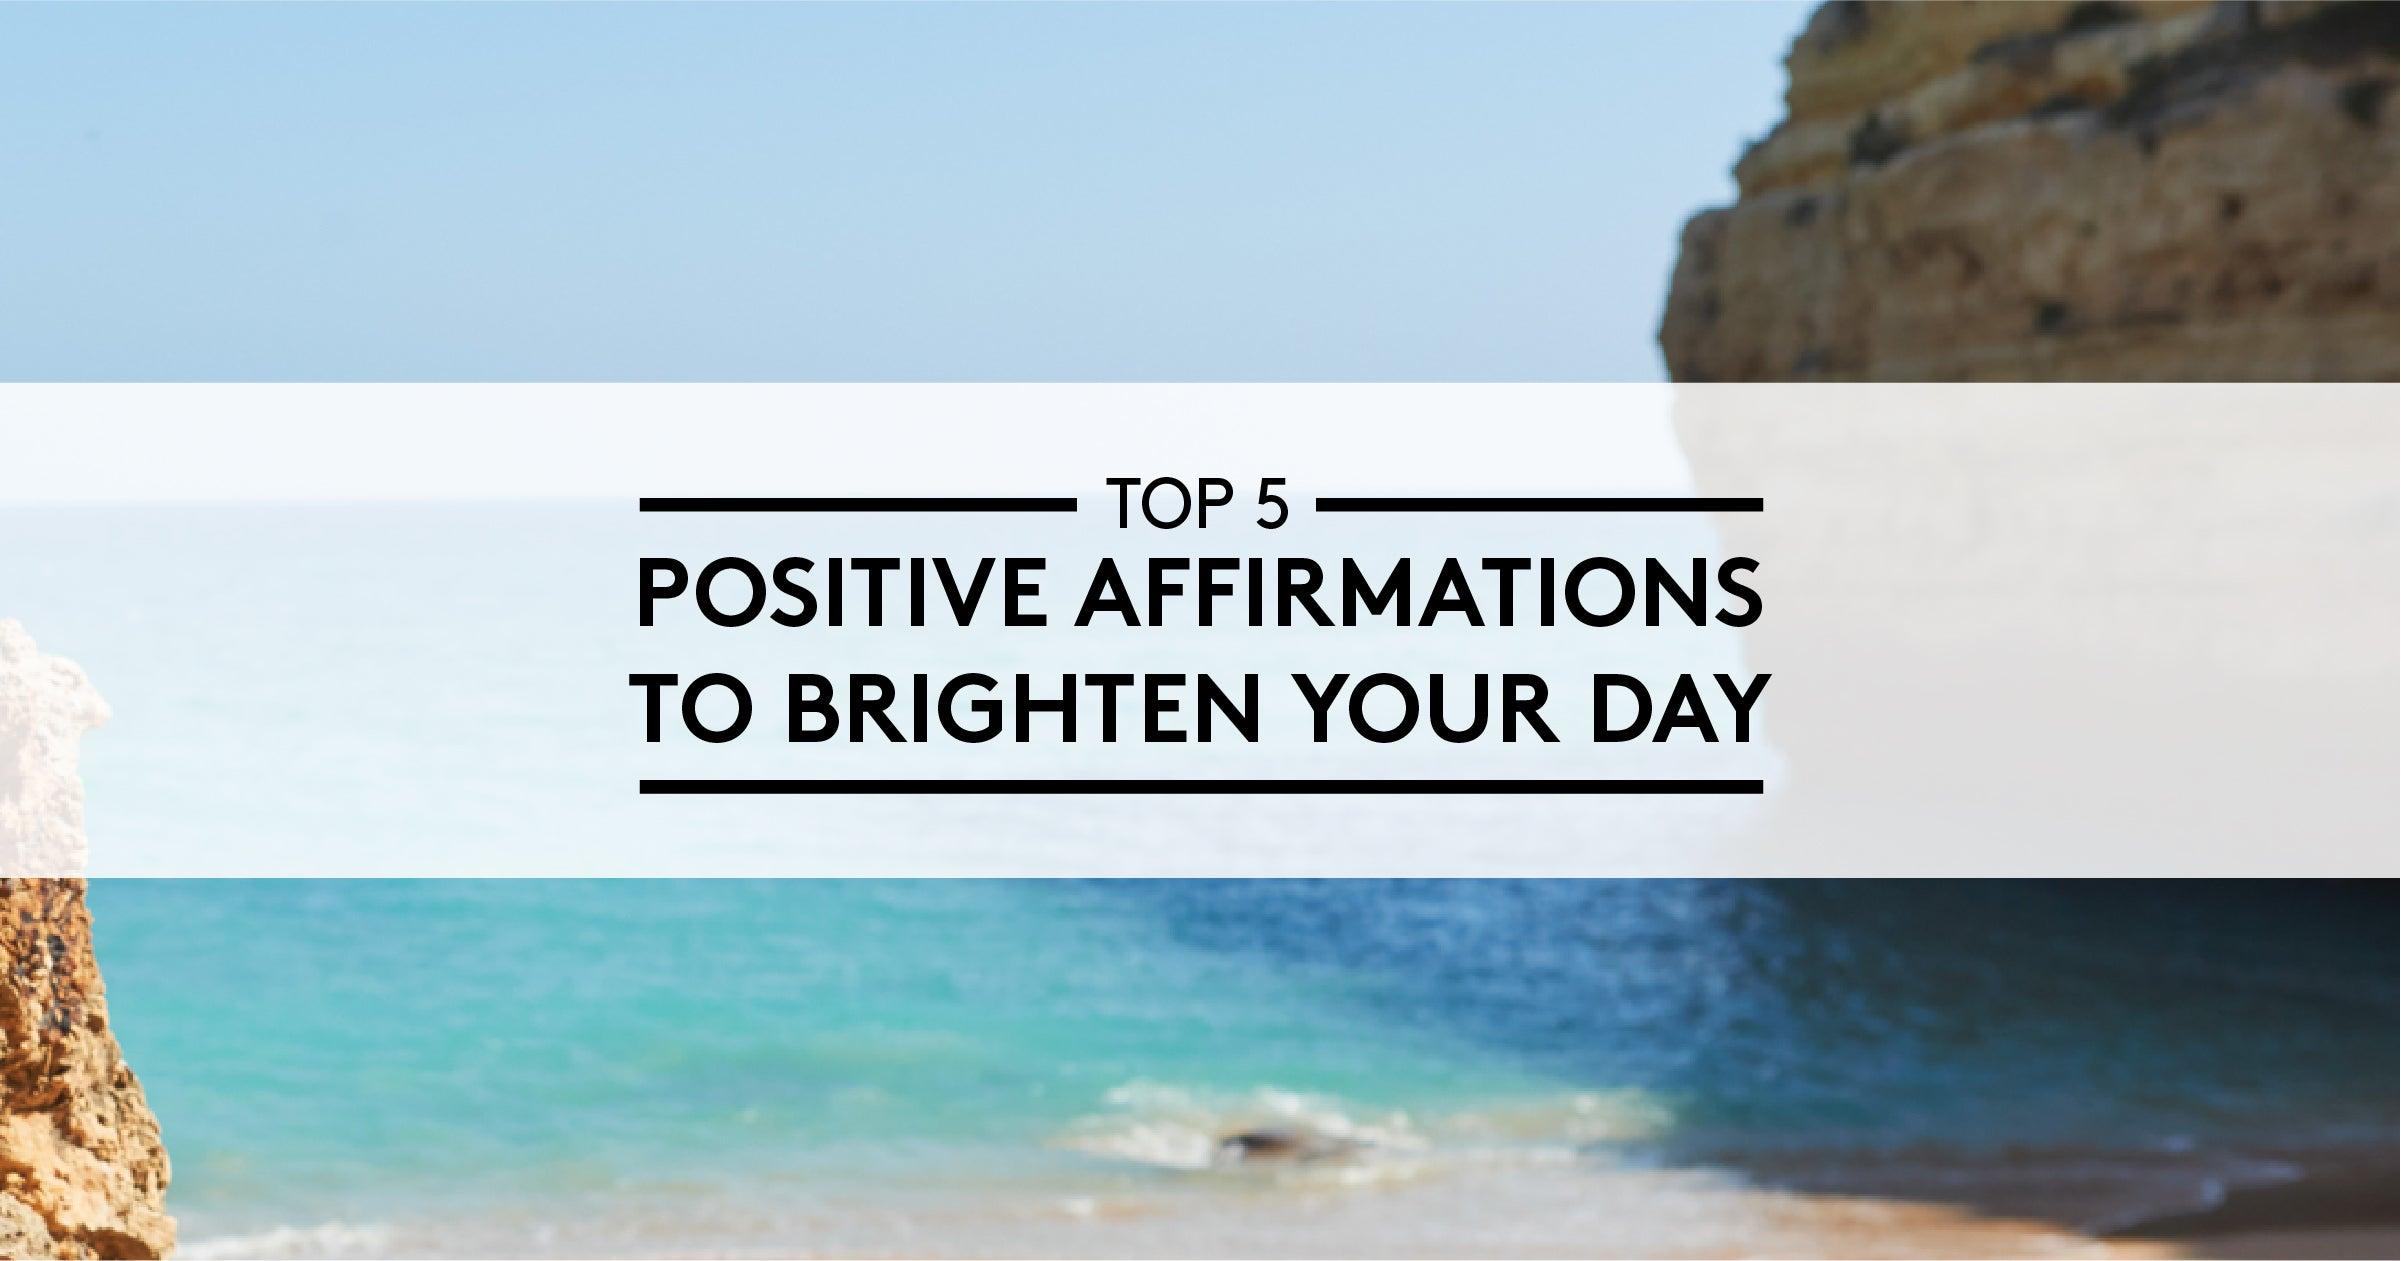 5 Positive Affirmations To Brighten Your Day